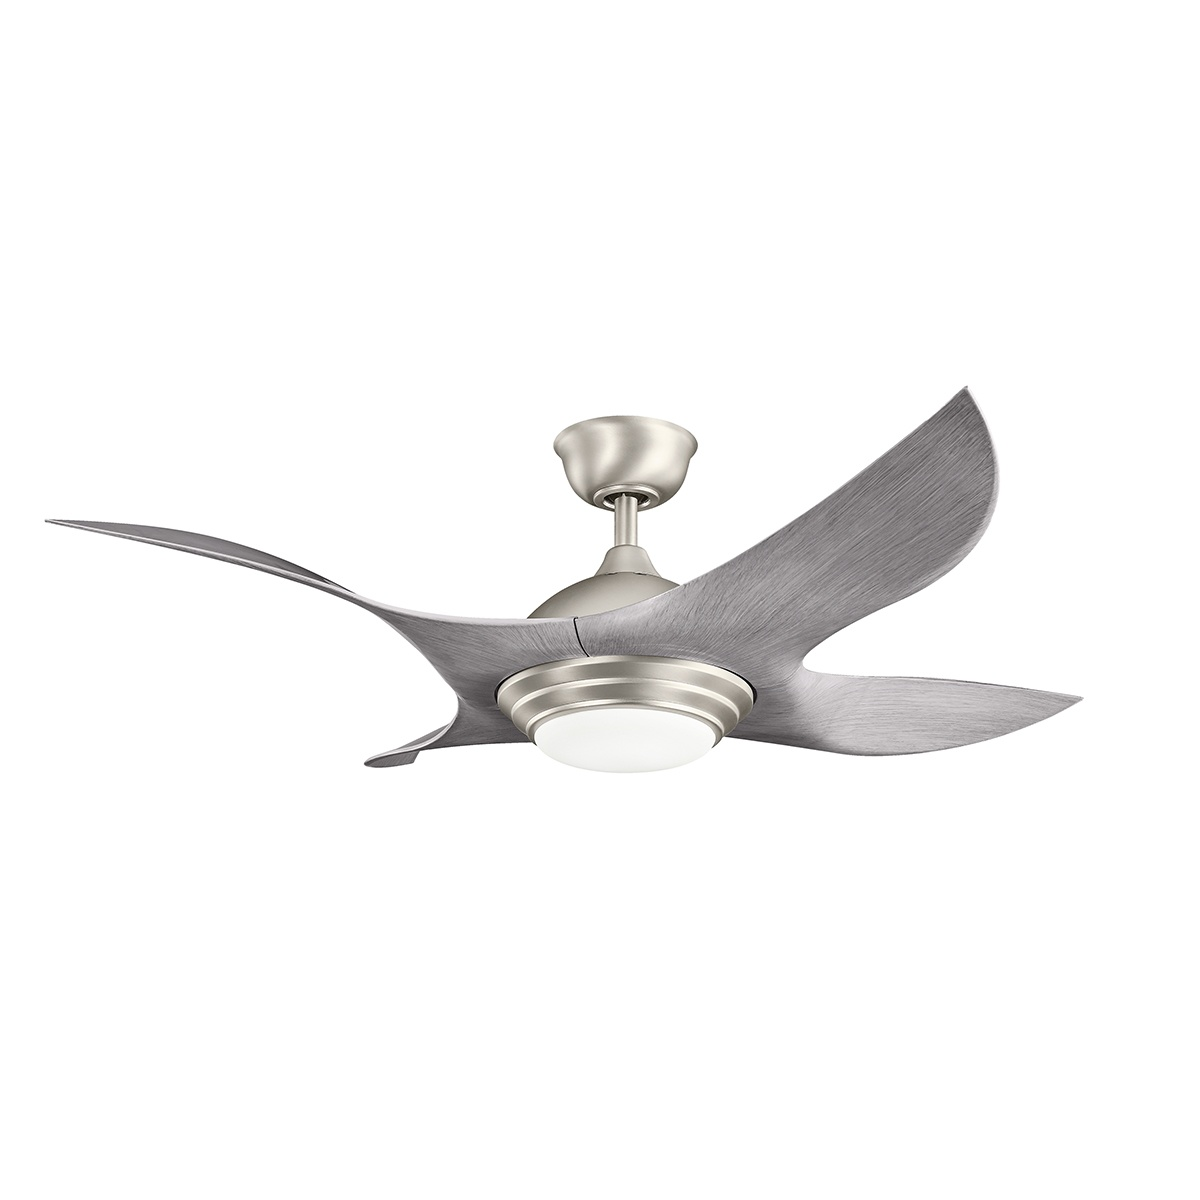 52 inchCeiling Fan from the Shuriken collection by Kichler 300209NI